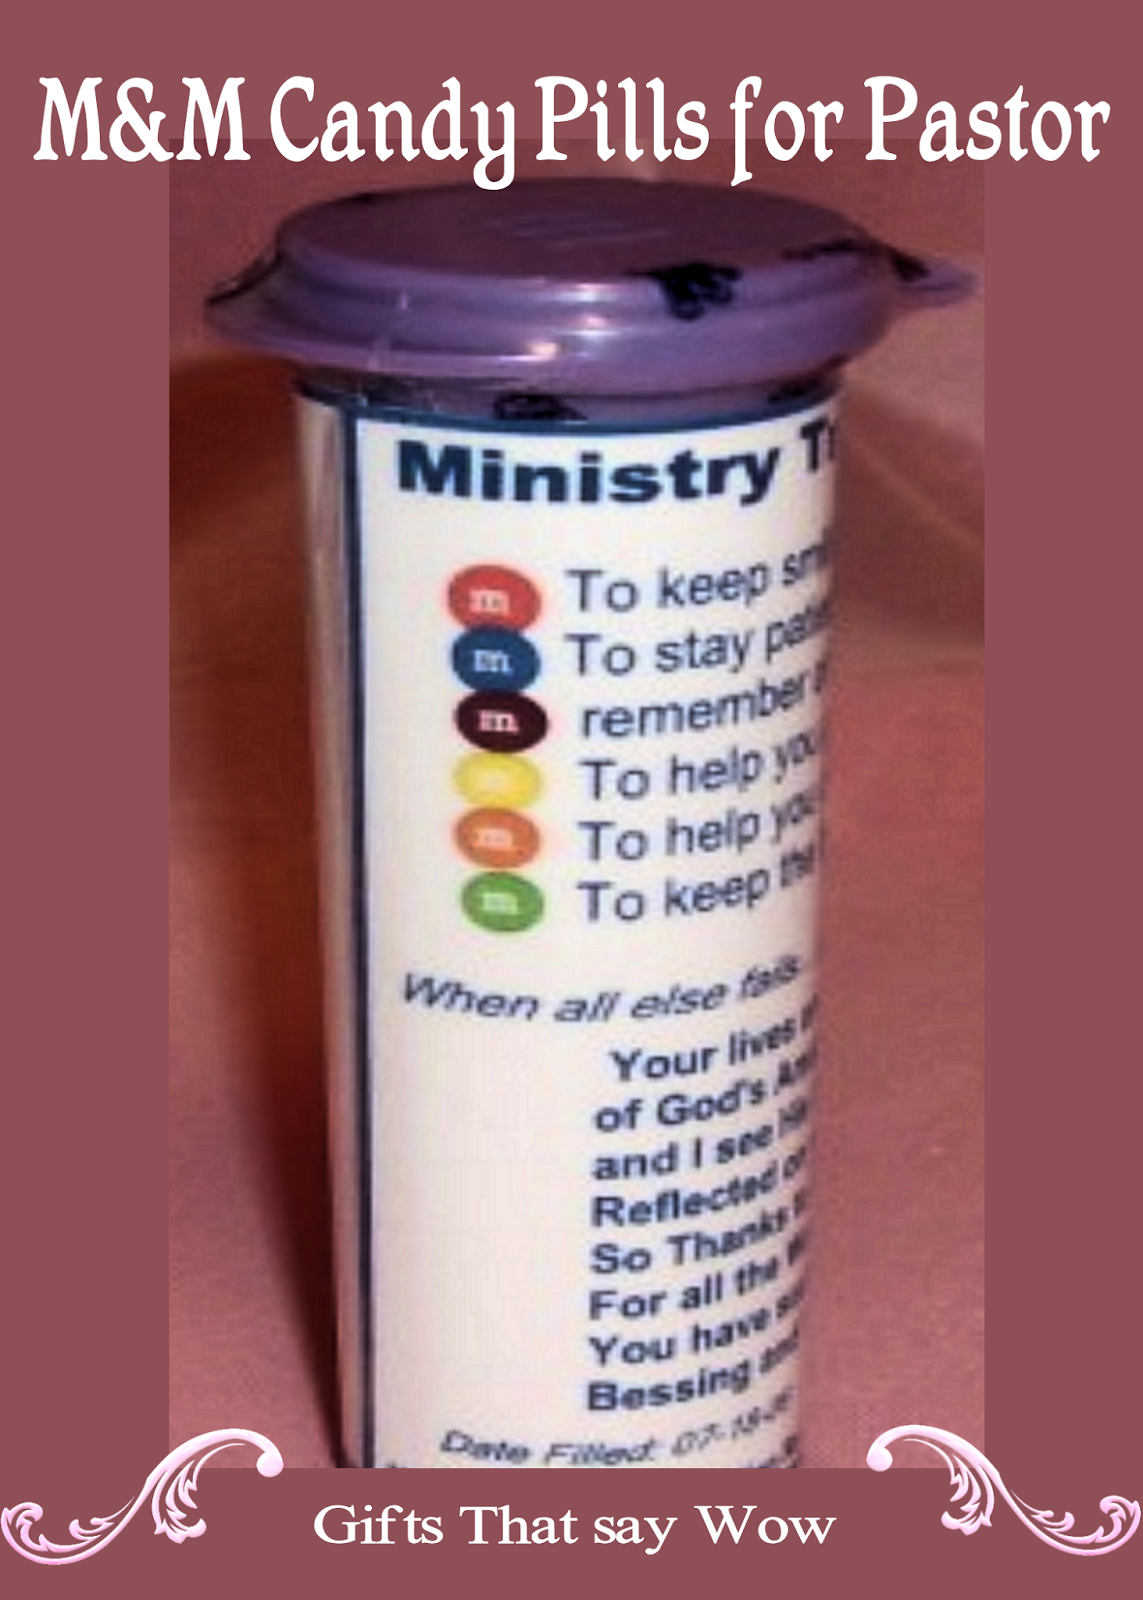 Gifts that say wow fun crafts and gift ideas m ms candy i made these ministry tranquilizers using m m candy in a round canister it is so much fun watching your pastor or church leaders read the bottle and is a negle Gallery